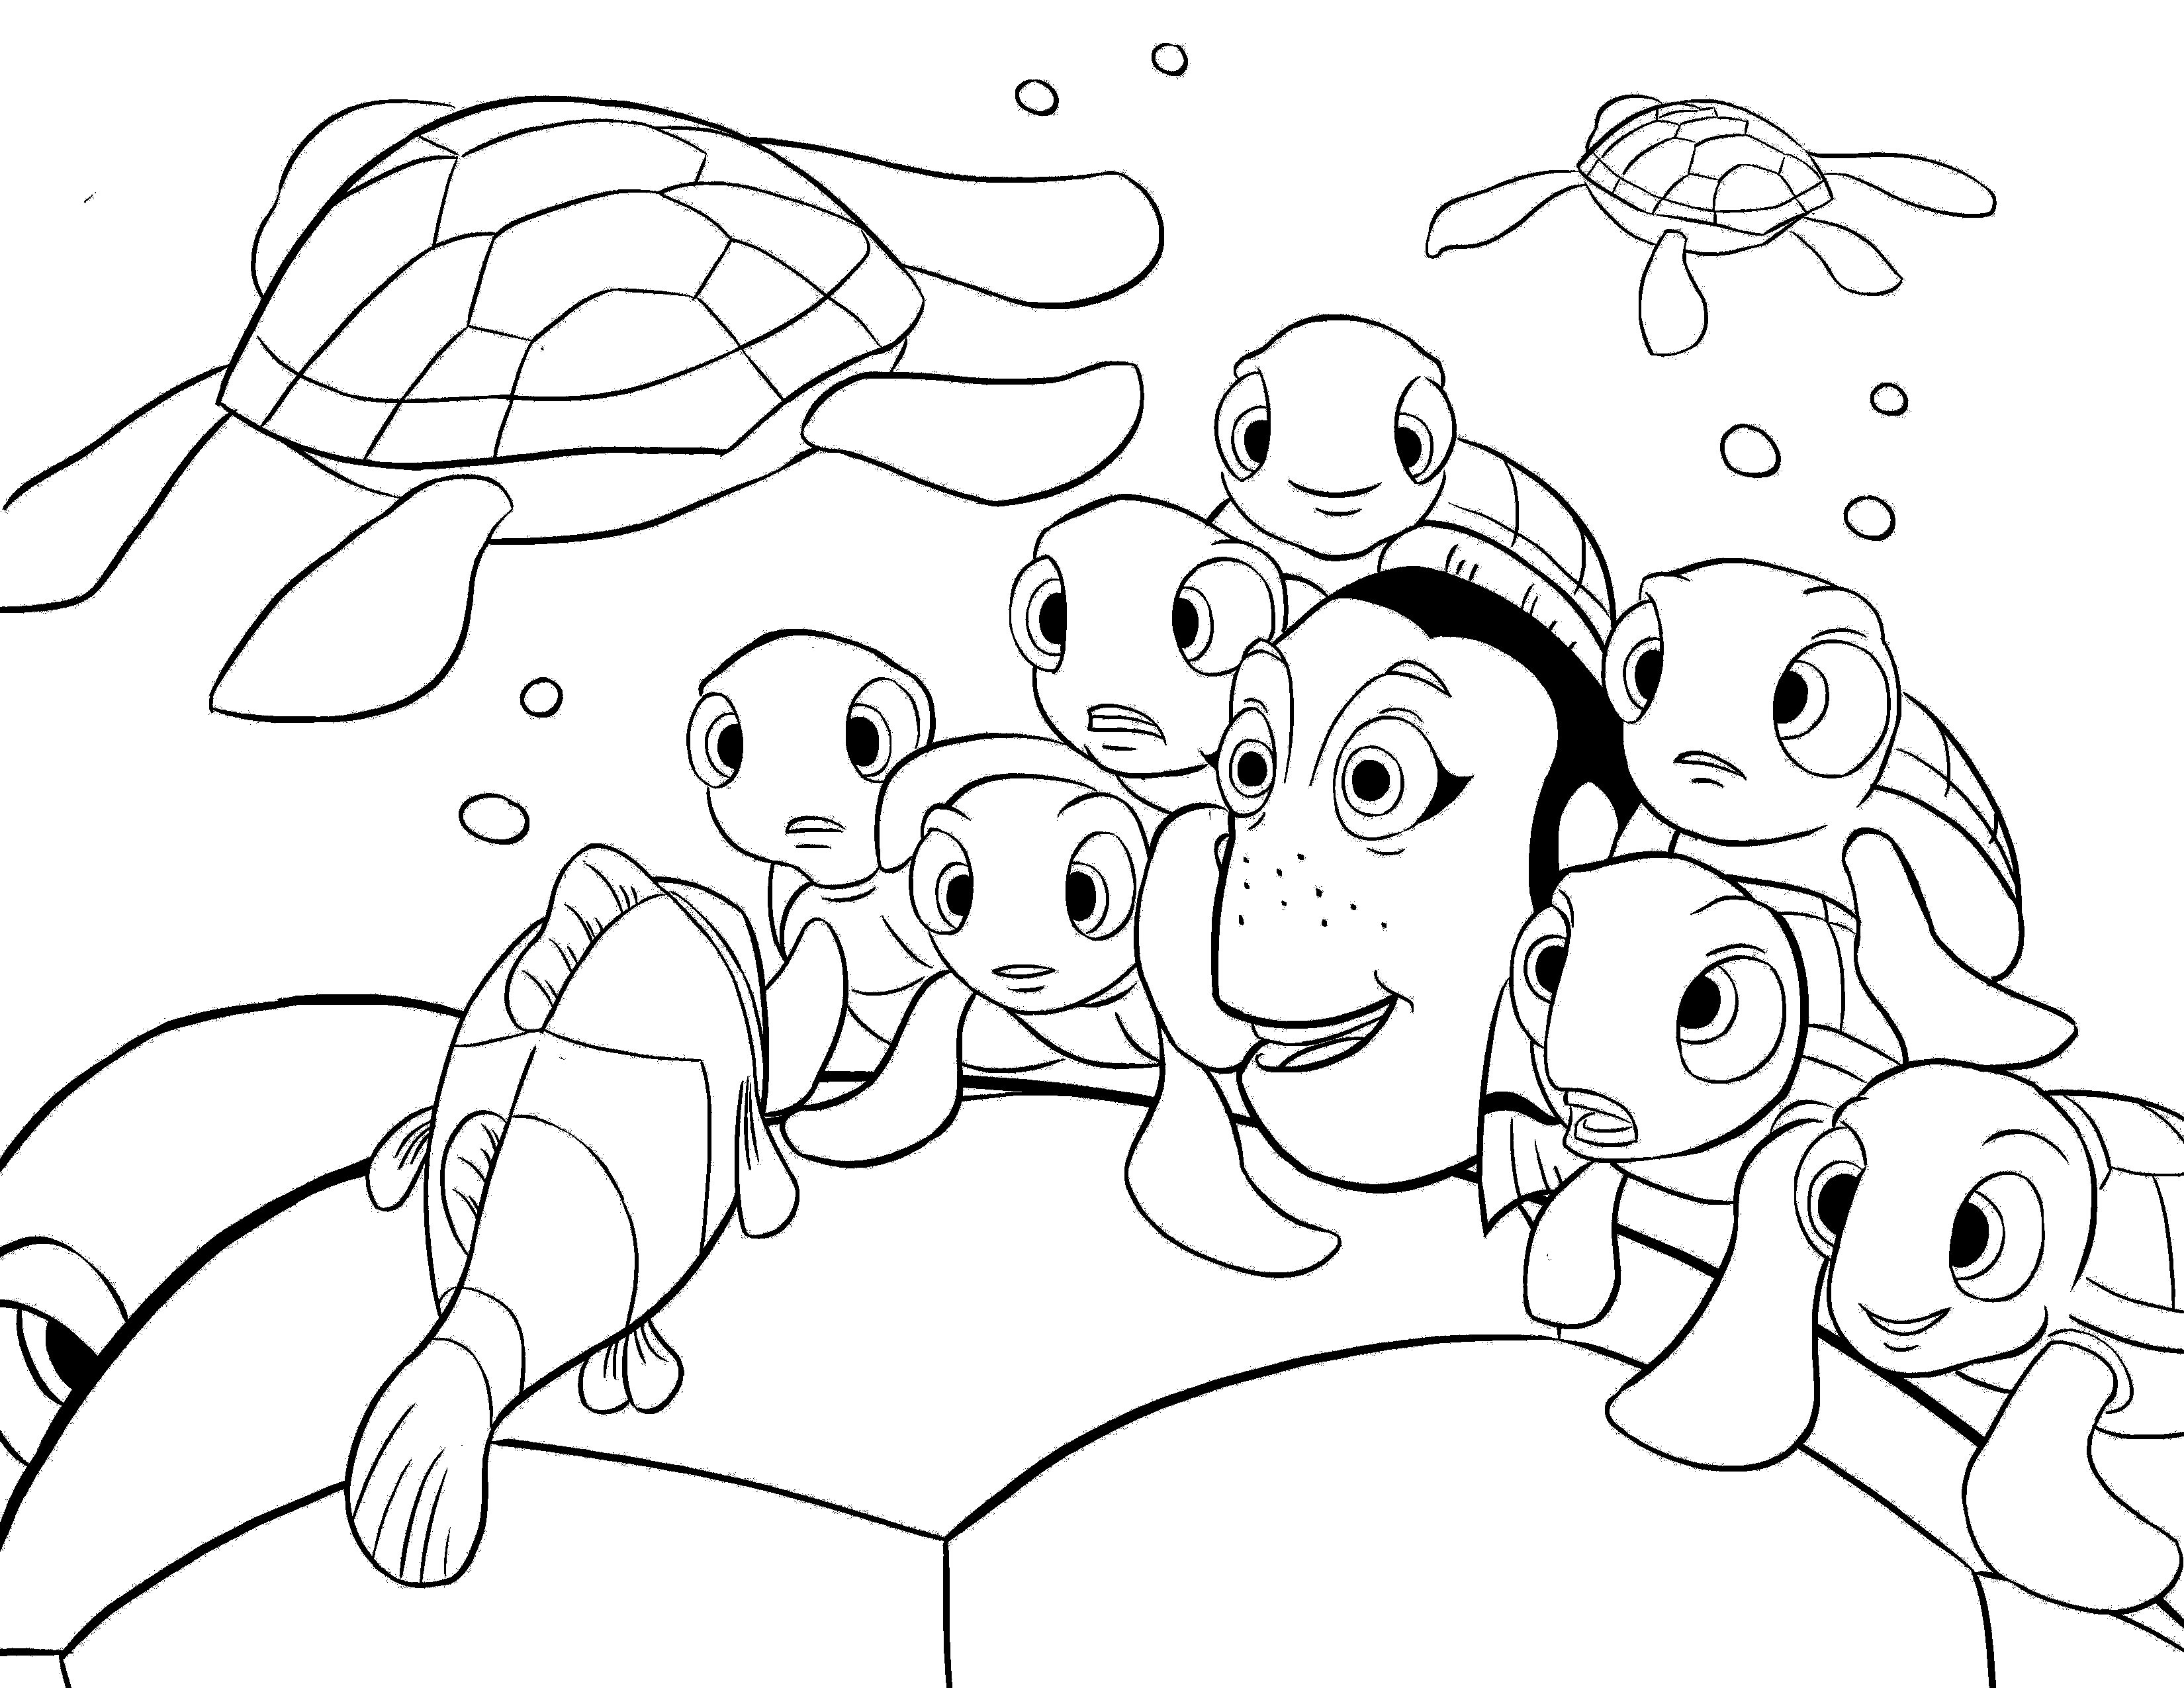 3300x2550 Inspiration Pixar Coloring Pages Finding Nemo